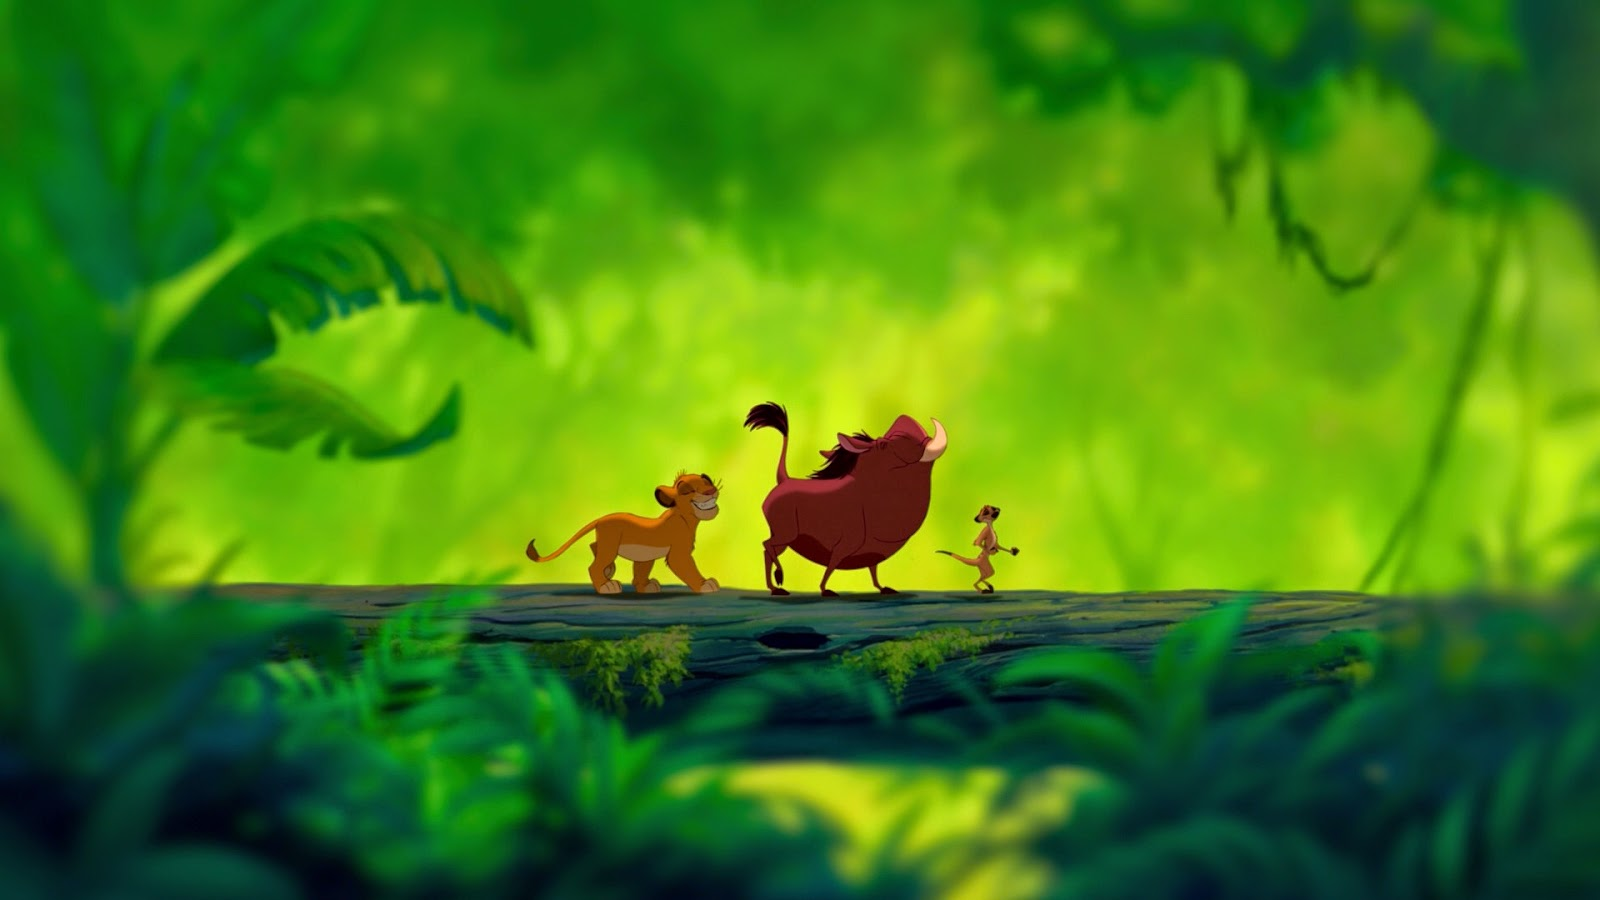 Wallpaper of The Lion King Wallpaper for fans of The Lion King 2Simba 1600x900